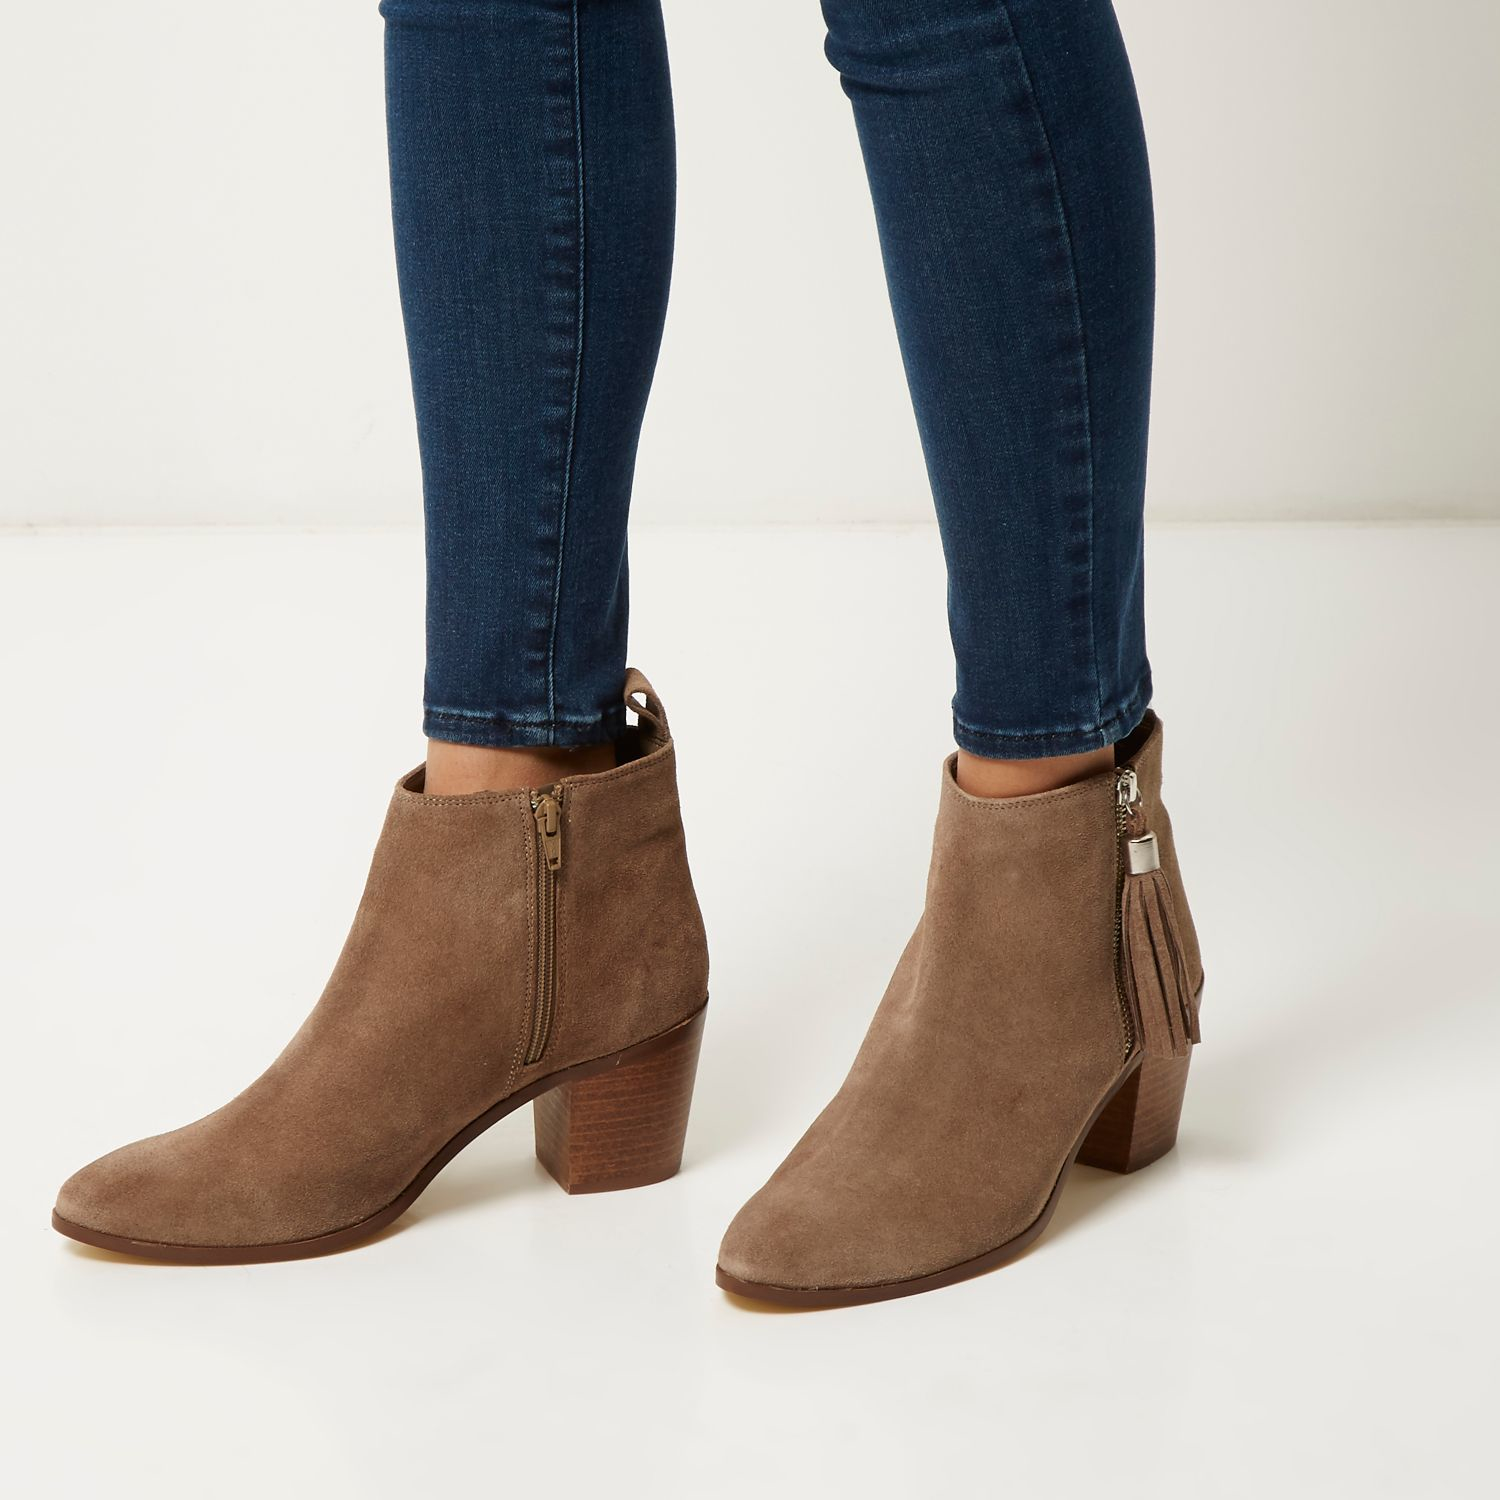 Beige suede block heel ankle boots Beige suede block heel ankle boots $ Product no: Size guide Only a few left in stock Black chunky side zip block heel ankle boots. Quick view. Add to wishlist. $ Black square toe ankle boots. Quick view. Add to wishlist. $ Black faux leather block heel shoe boots.